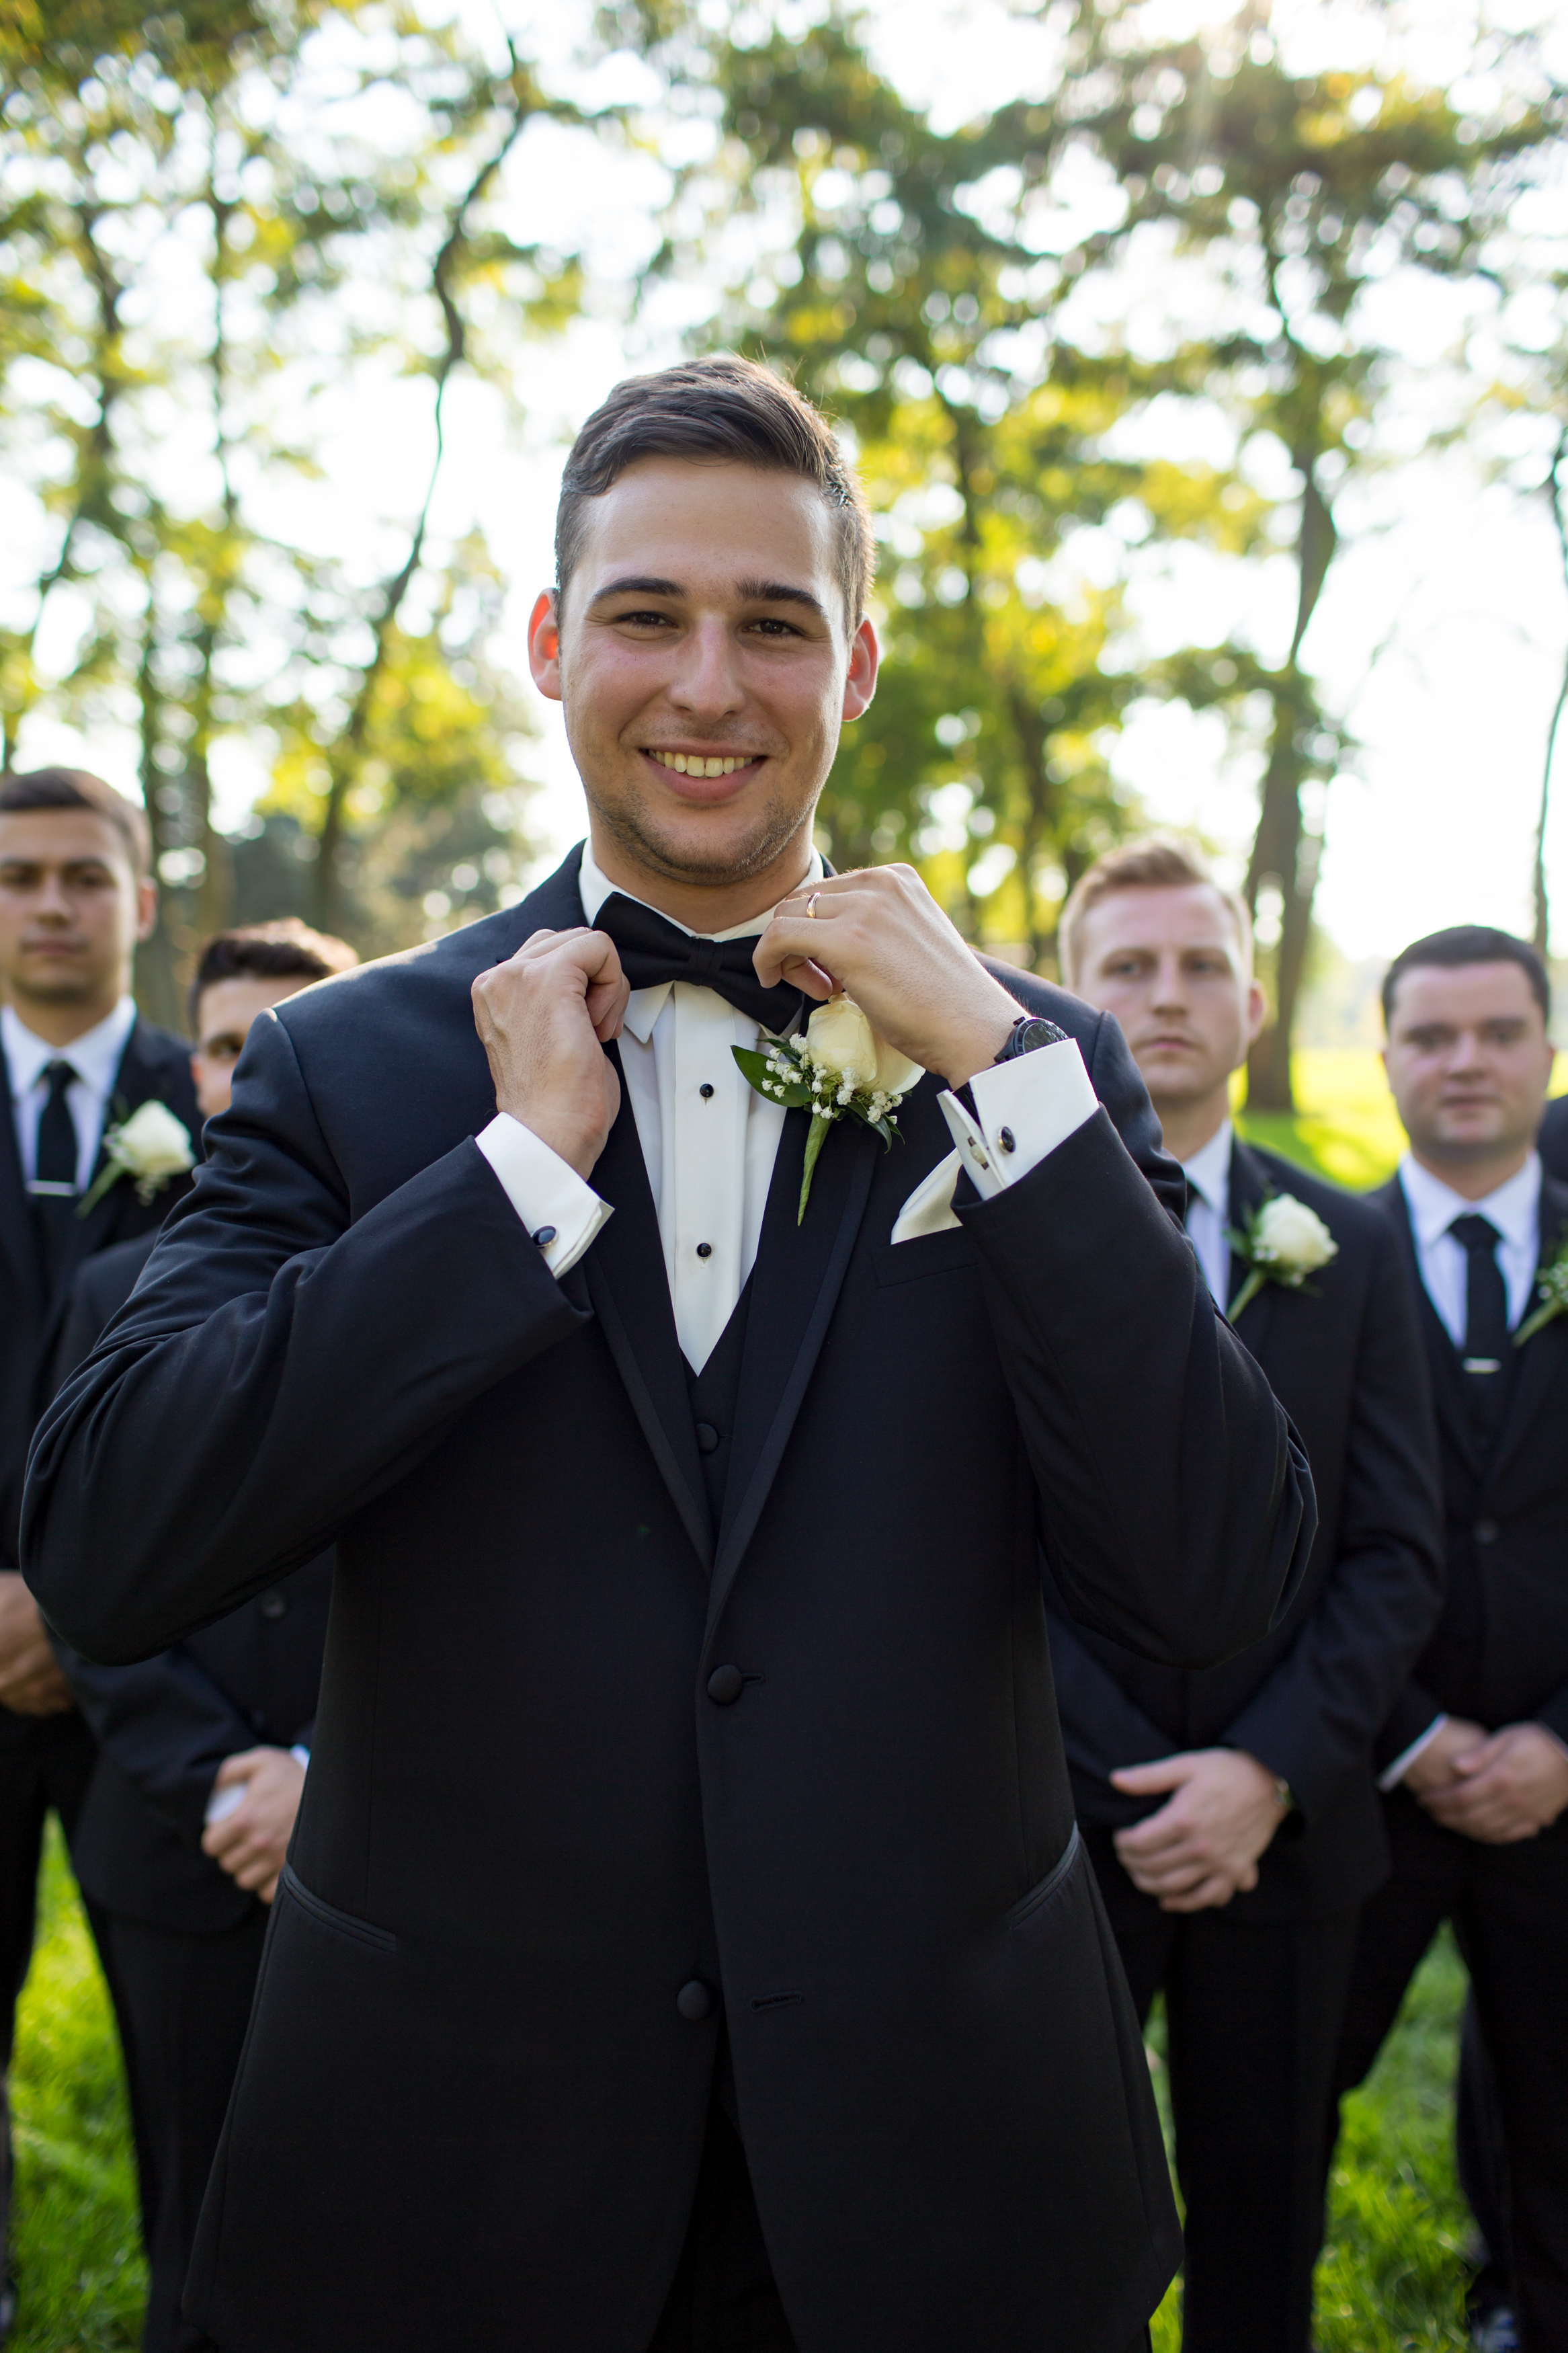 Groom getting for wedding photos with his groomsmen in detroit michigan